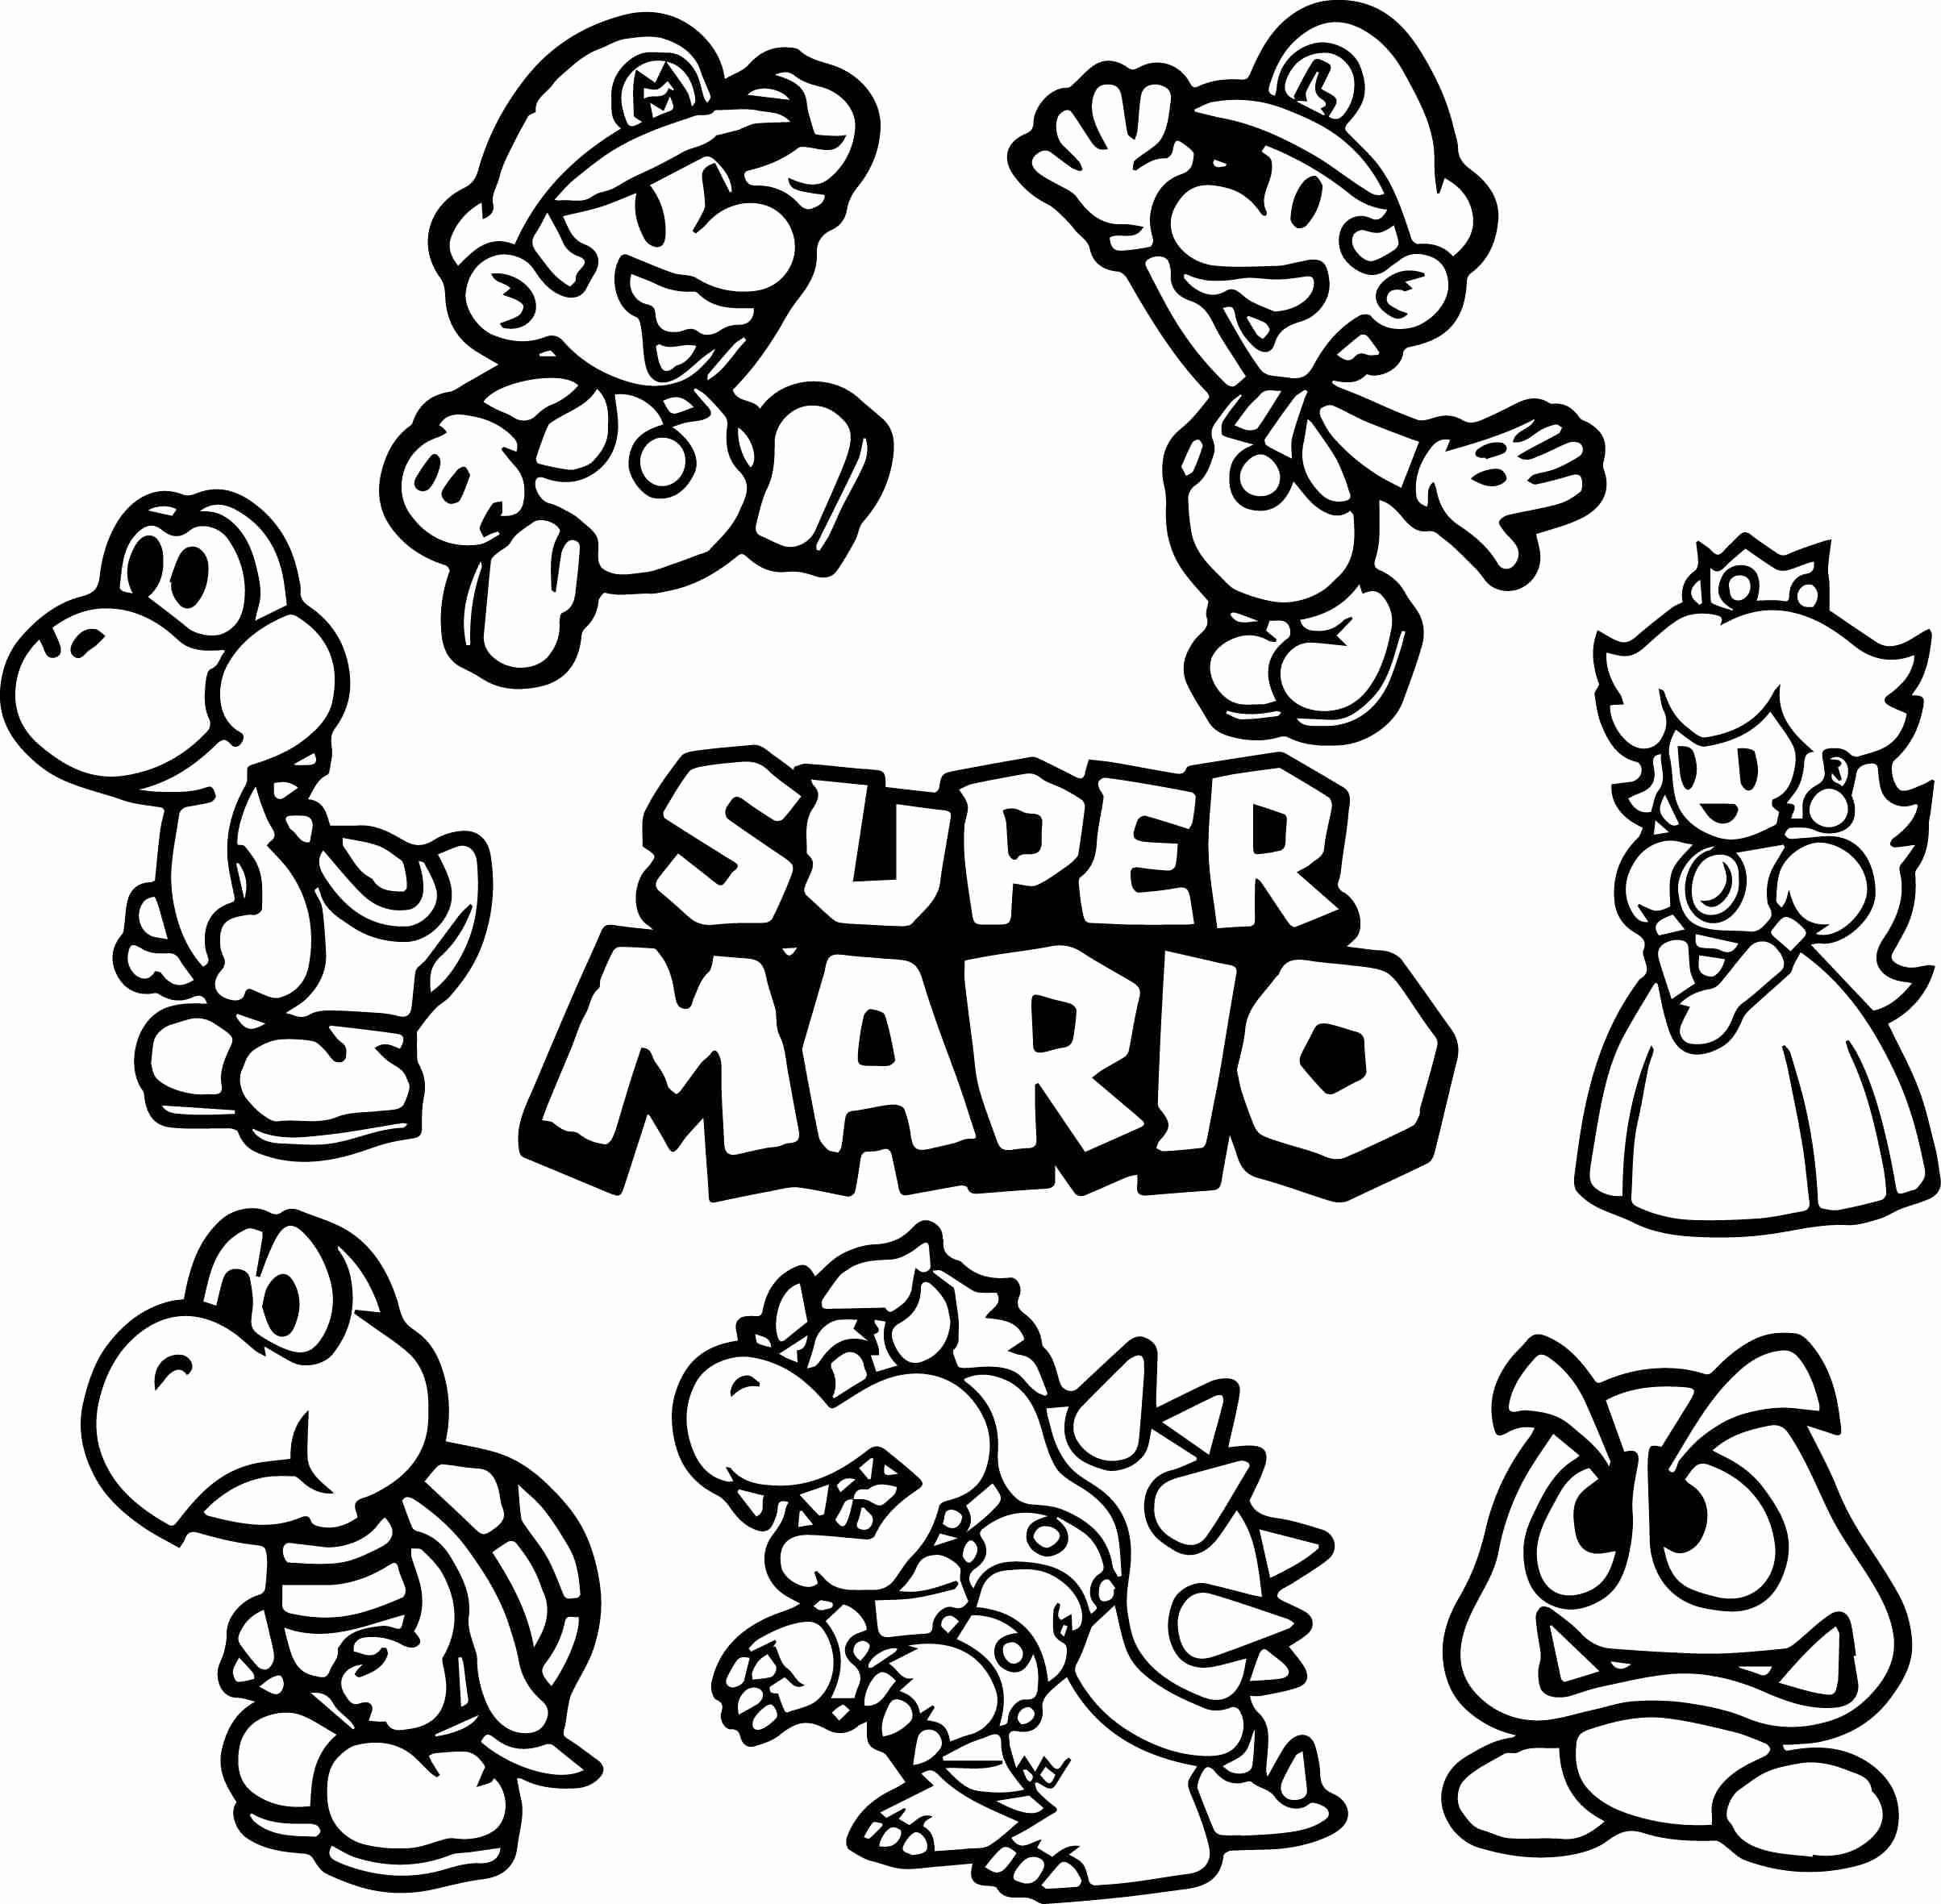 Super Mario Ausmalbilder Inspirierend Mario Coloring Pages for Boys Download Ausmalbilder Super Mario Fotos